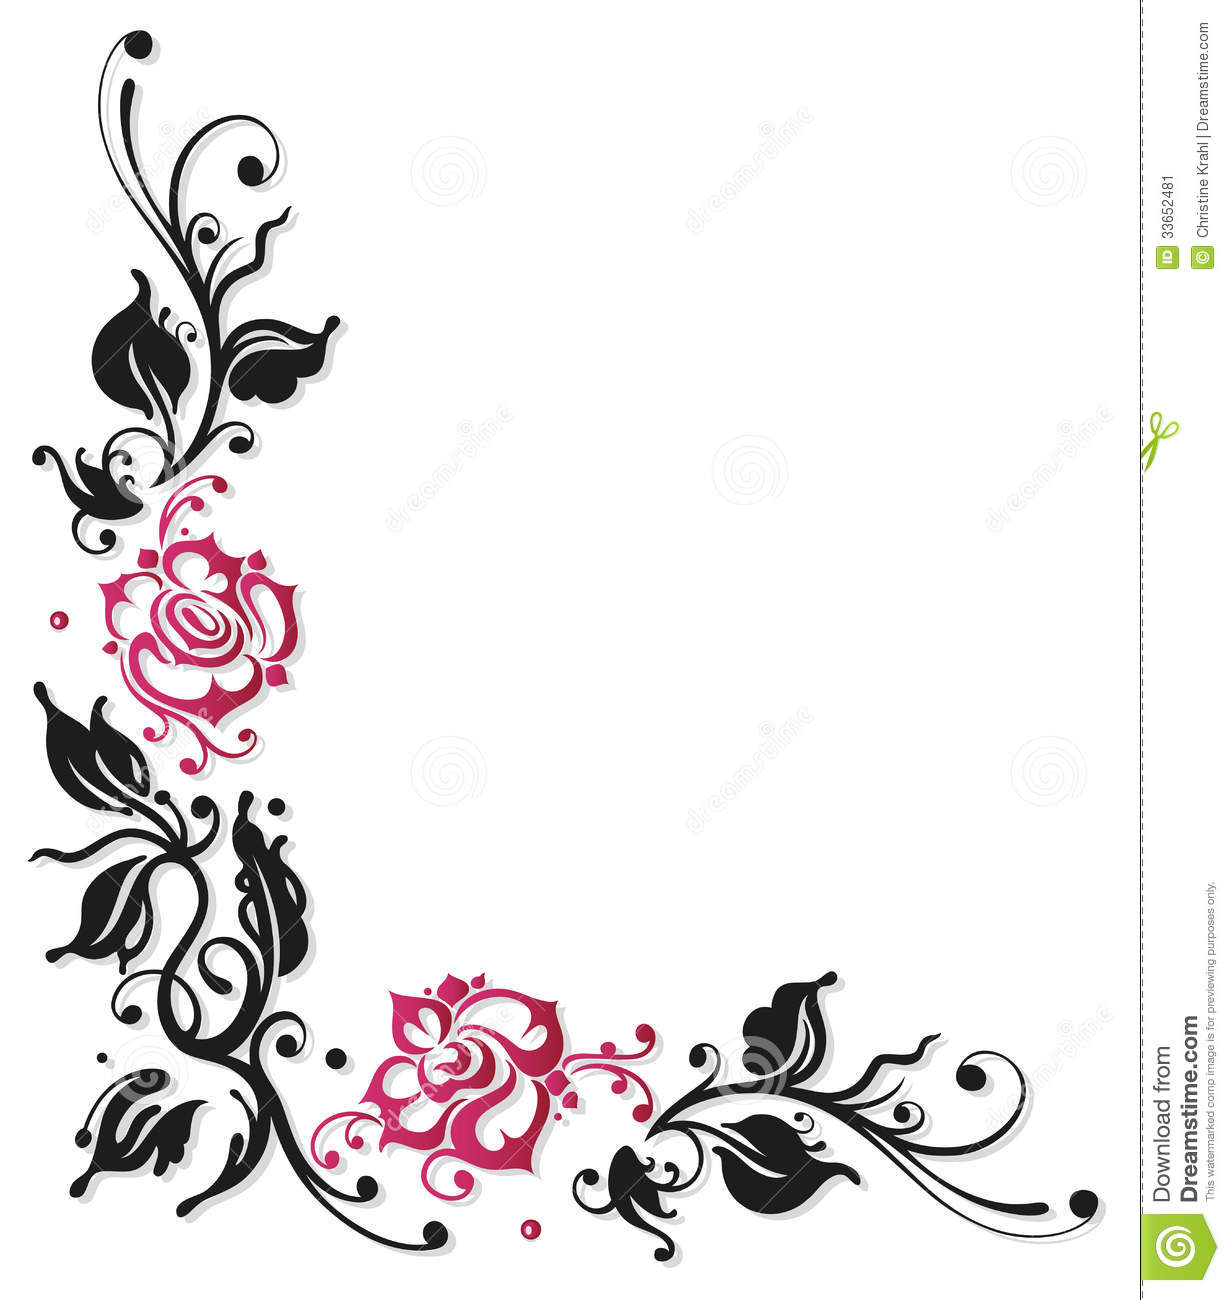 Flower Frame Clipart Black And White Free Download Best Flower